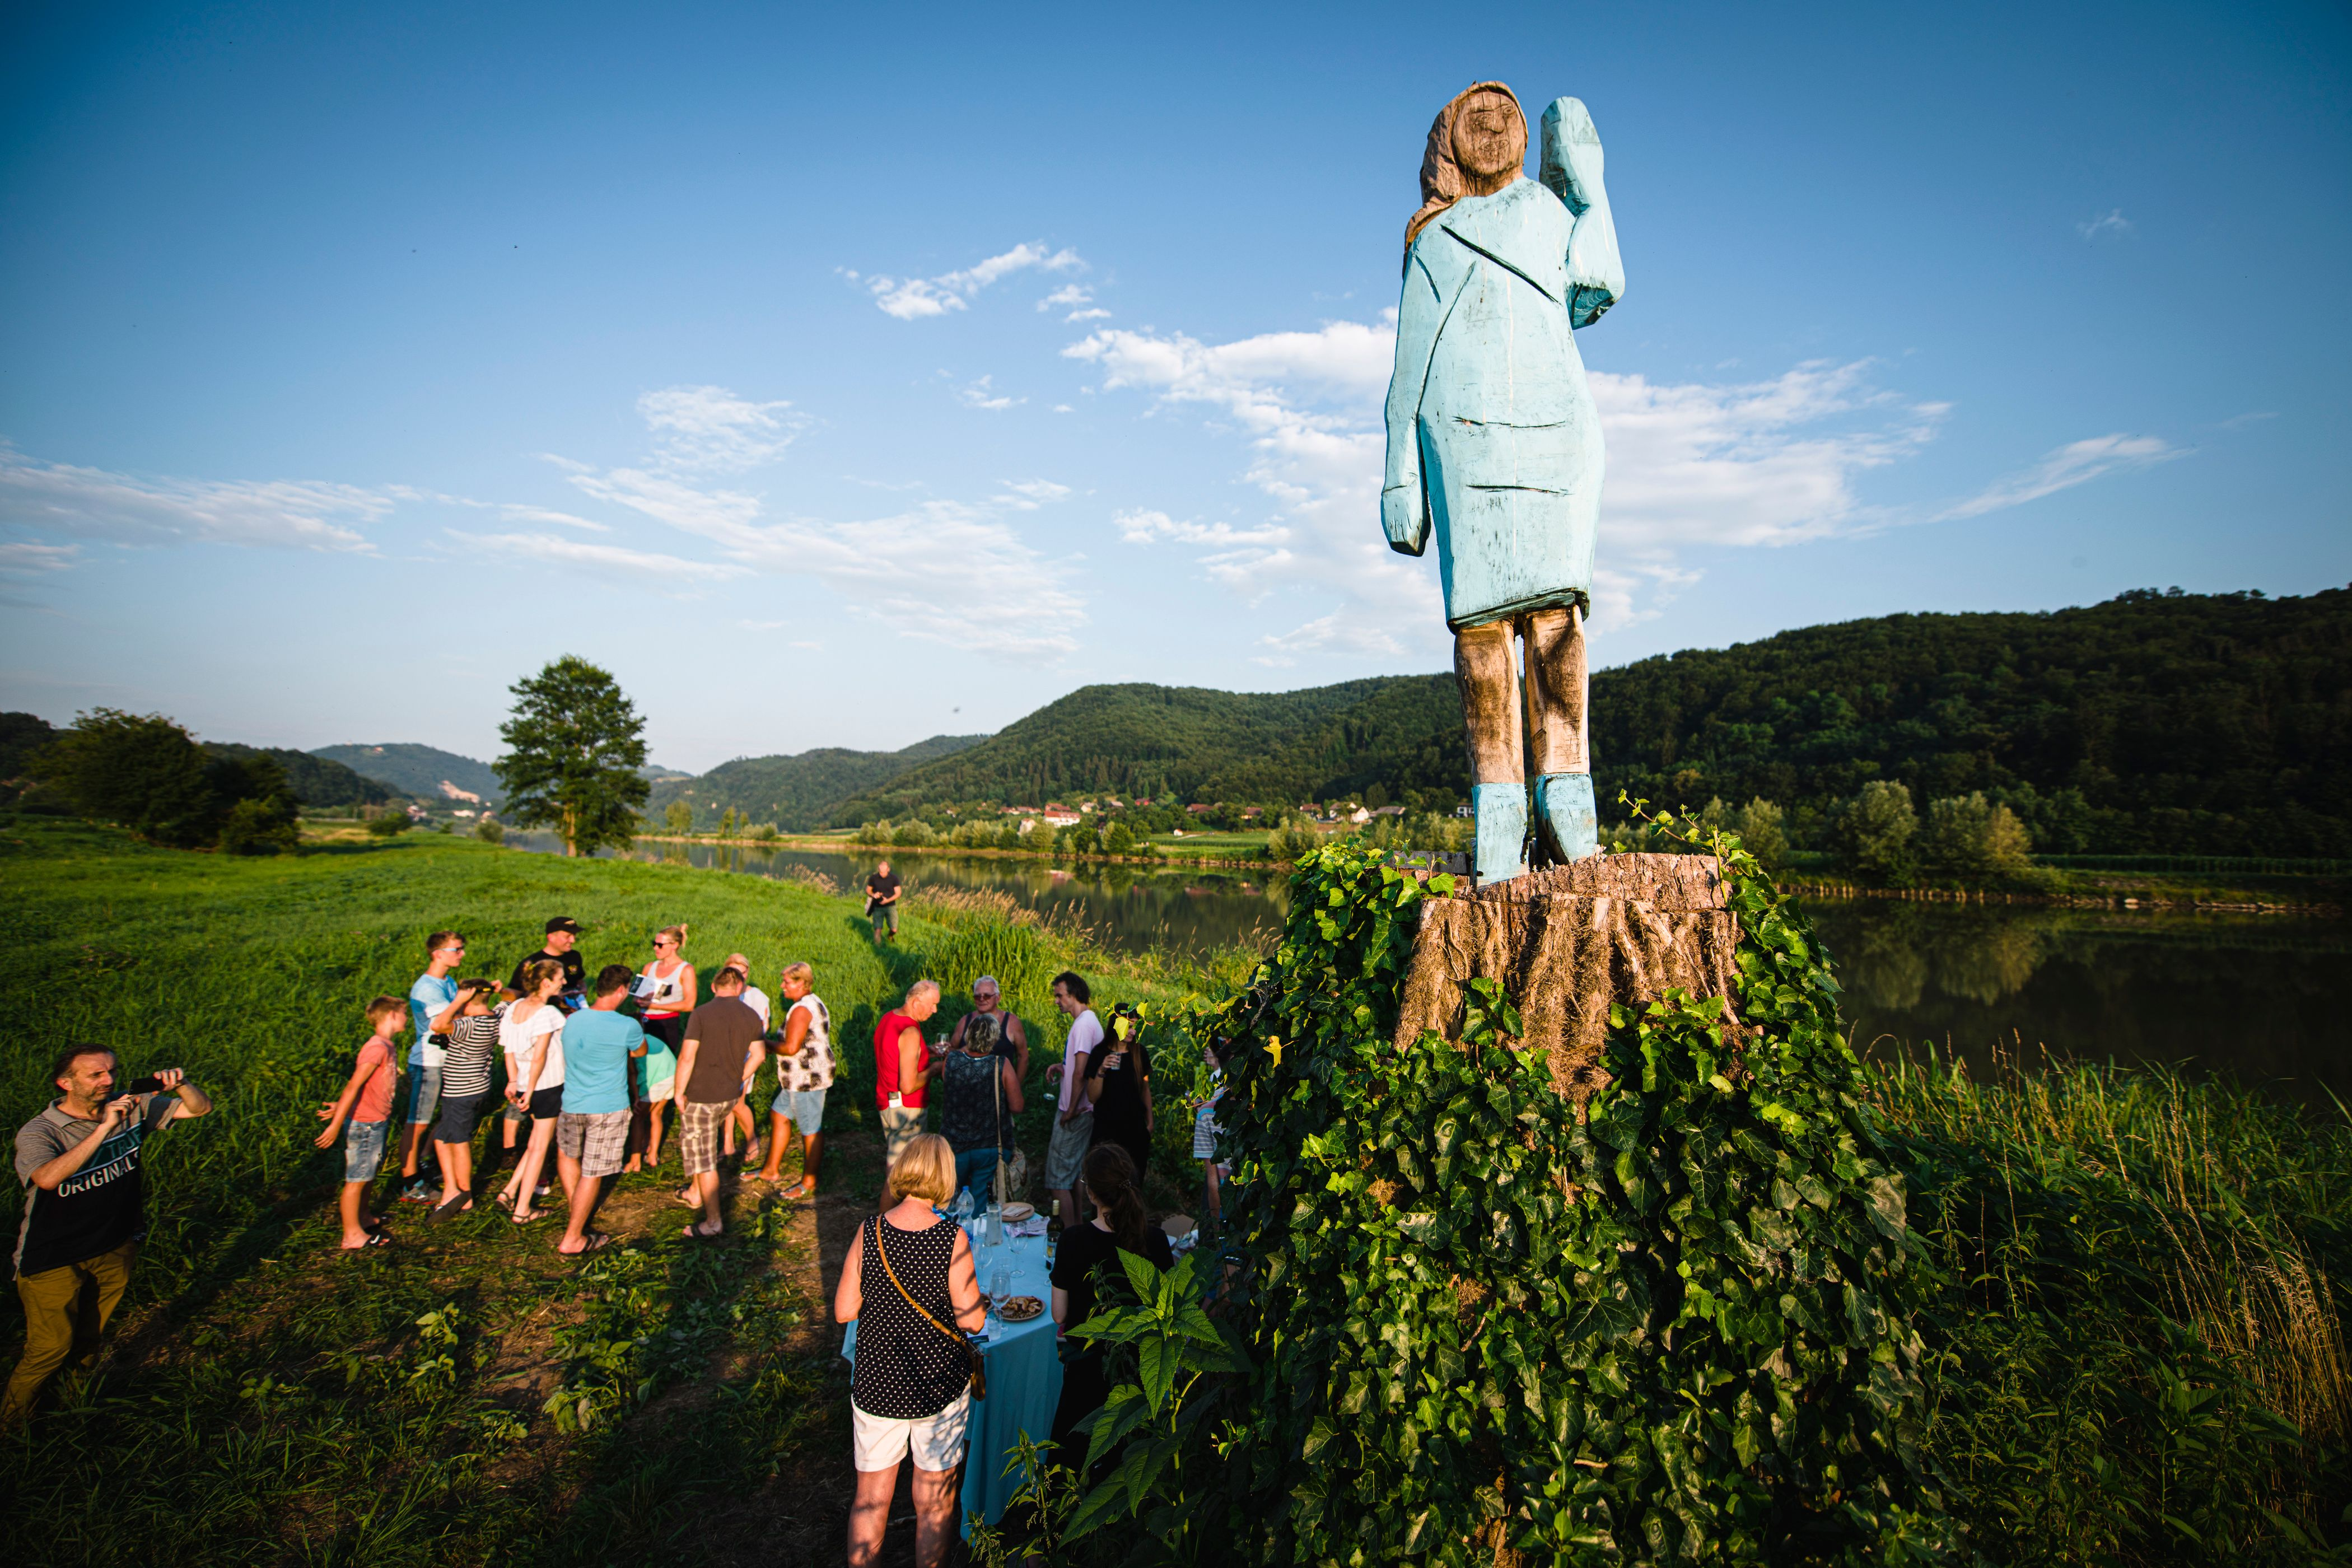 TOPSHOT - People gather around what conceptual artist Ales 'Maxi' Zupevc claims is the first ever monument of Melania Trump, set in the fields near the town of Sevnica, US First Ladys hometown, during a small inauguration celebration on July 5, 2019. - After Melania cake, Melania honey, and even Melania slippers, the Slovenian hometown of the US's first lady will now boast a statue of its most famous daughter -- albeit one which has faced decidedly mixed reviews. The life-size statue on the outskirts of Sevnica was inaugurated on July 5, 2019. (Photo by Jure Makovec / AFP) / RESTRICTED TO EDITORIAL USE - MANDATORY MENTION OF THE ARTIST UPON PUBLICATION - TO ILLUSTRATE THE EVENT AS SPECIFIED IN THE CAPTION        (Photo credit should read JURE MAKOVEC/AFP/Getty Images)